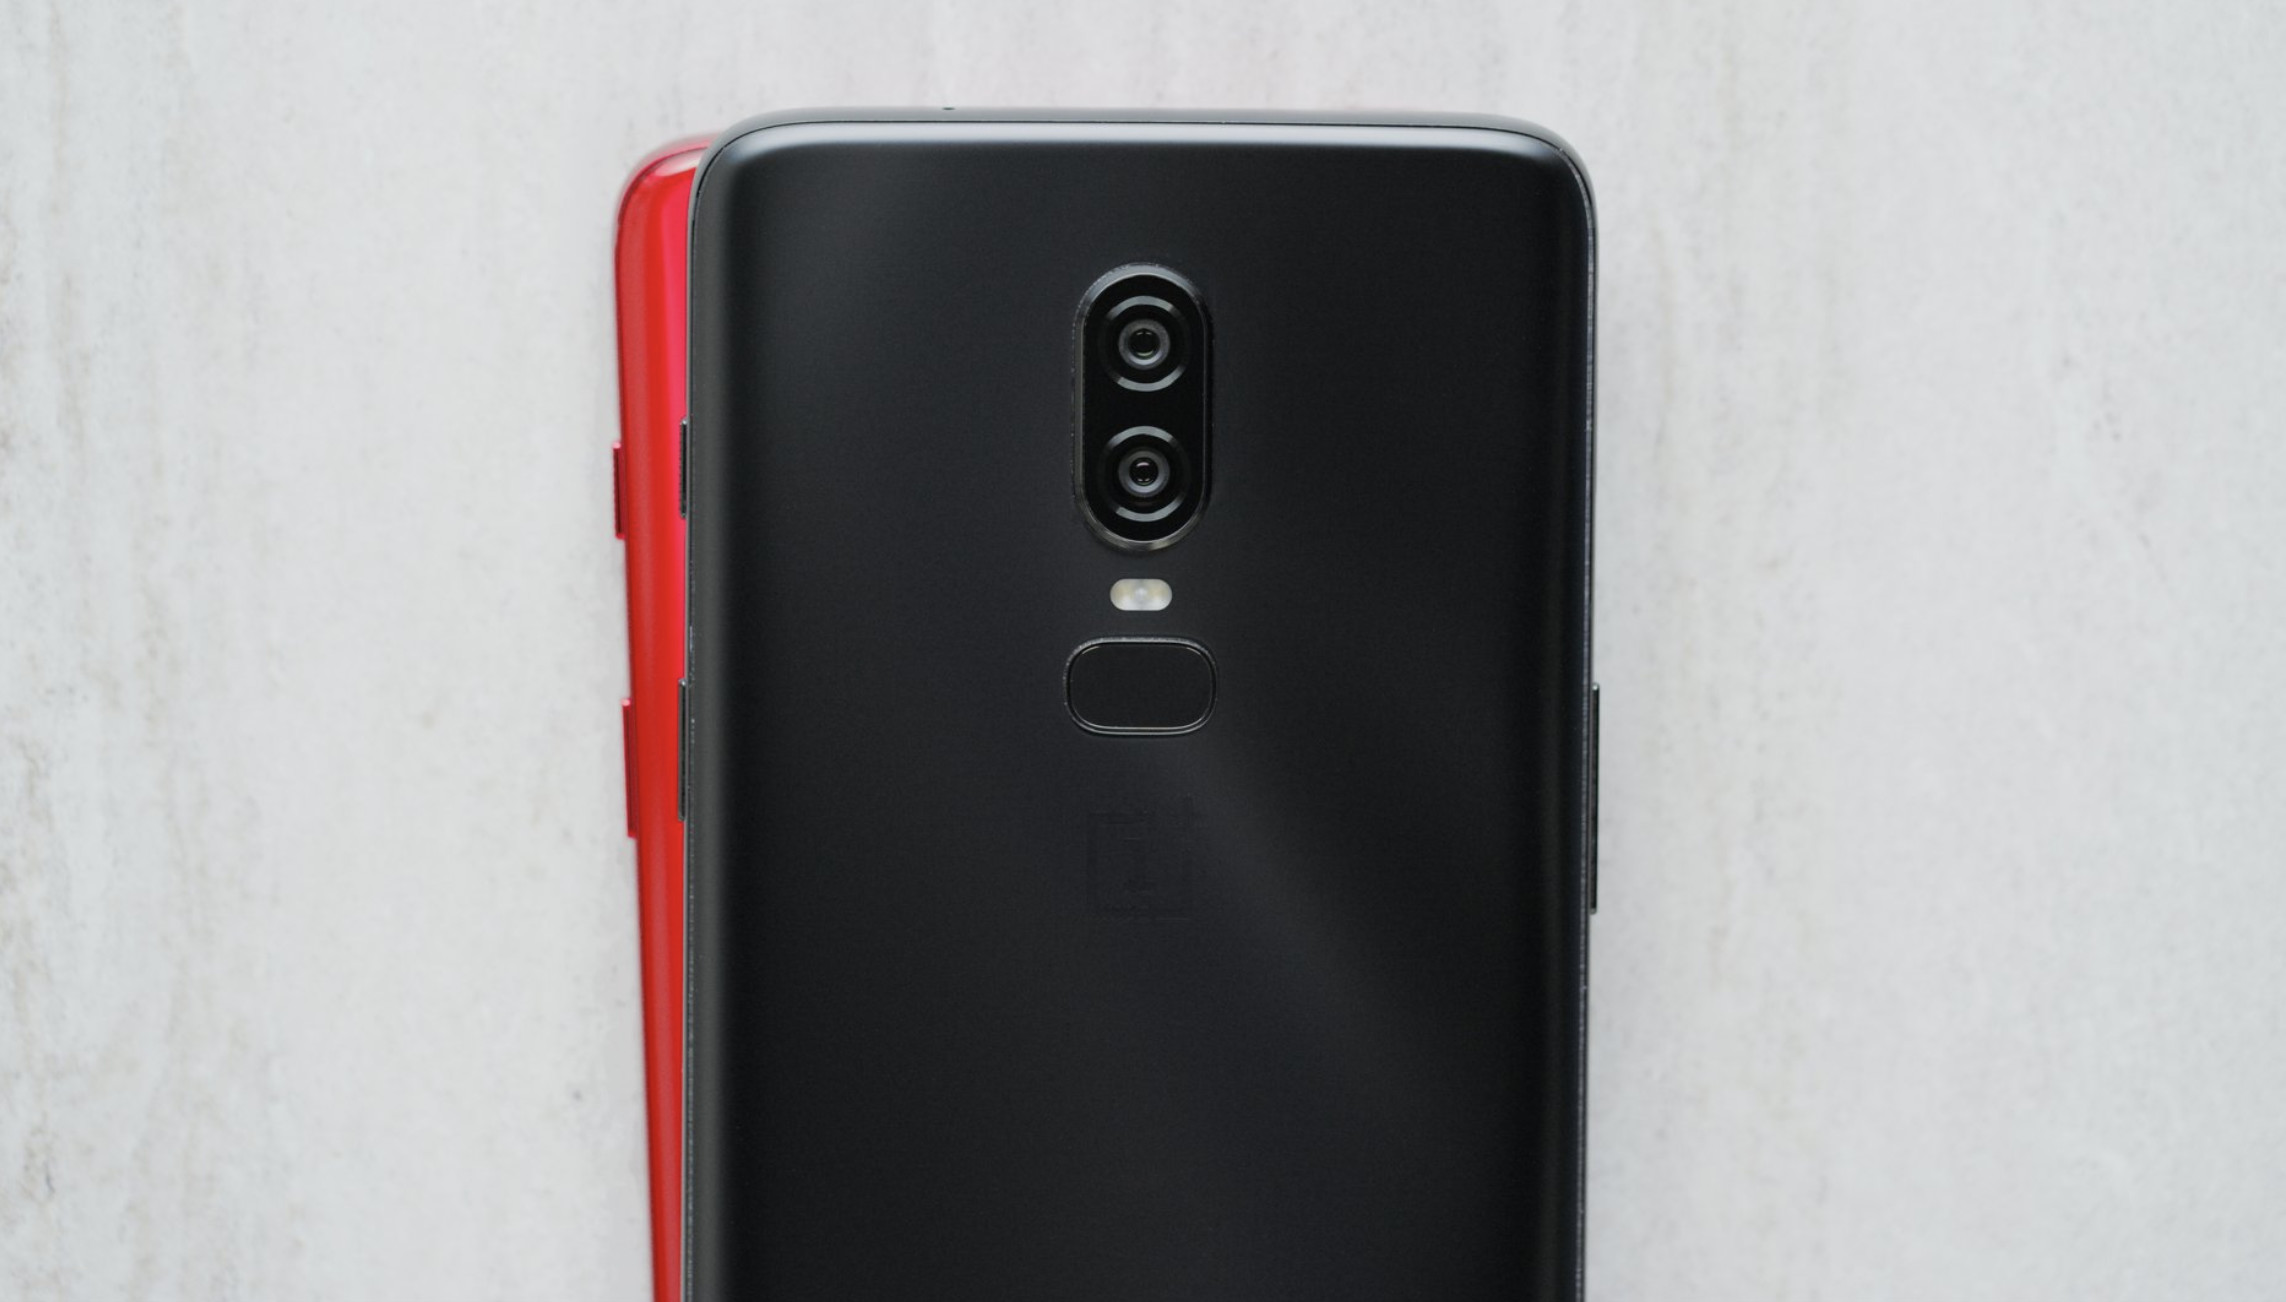 OnePlus 6 Red Variant is Launching in India on July 16